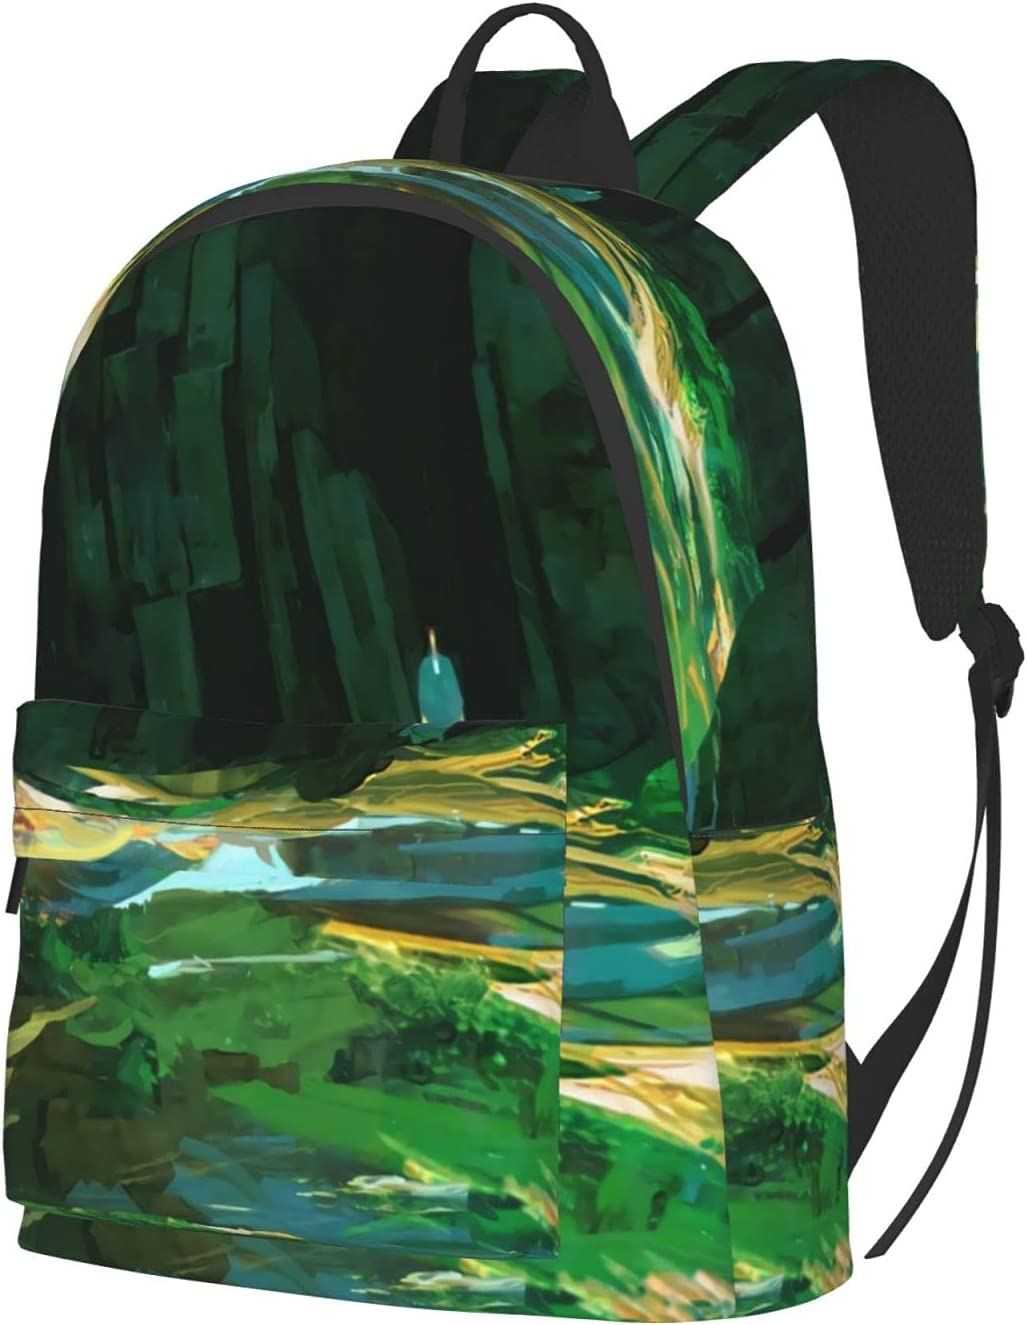 Large Capacity Backpack Water-Resistant New item Small Purse Jacksonville Mall Sho